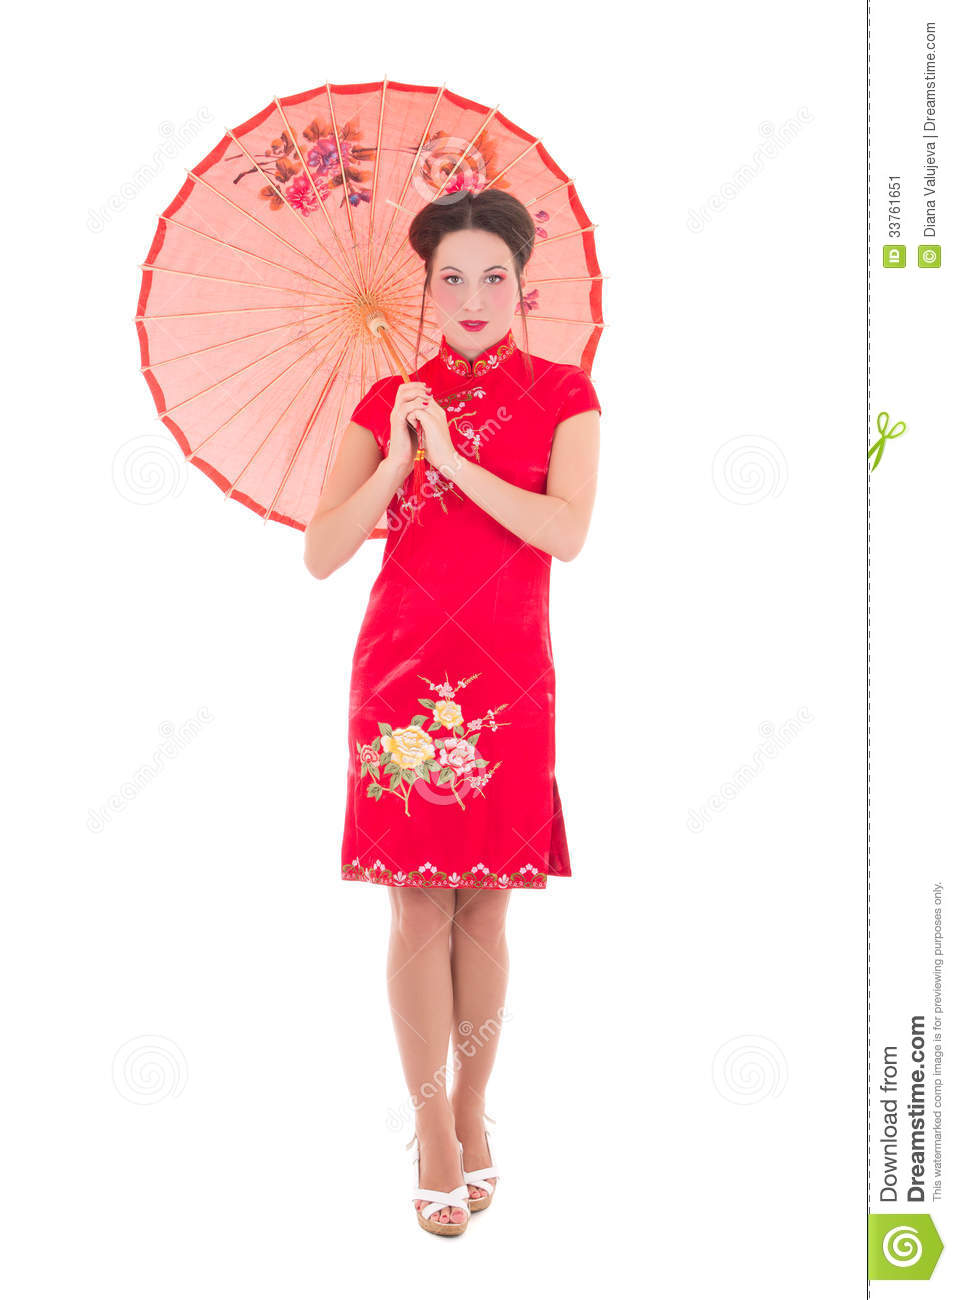 Beautiful Woman In Red Japanese Dress With Umbrella